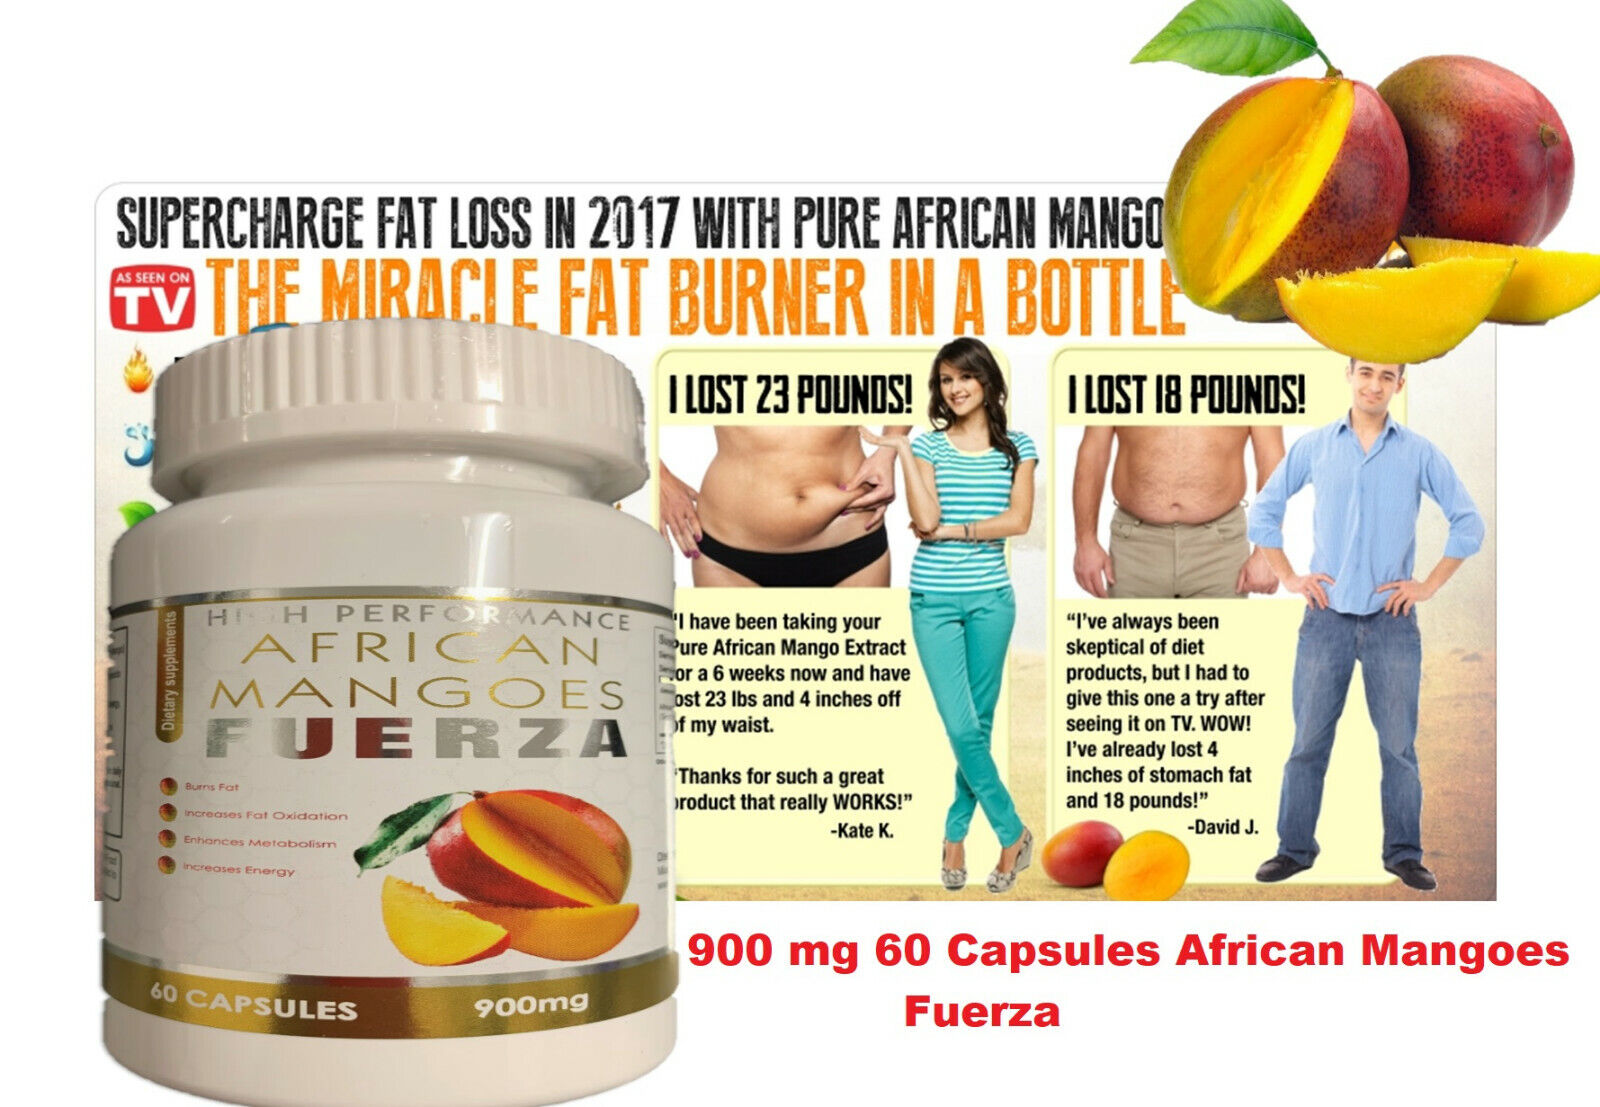 Extreme weight loss pills - PURE AFRICAN MANGO EXTRACT 900mg 1 Bottle 60 Caps 1